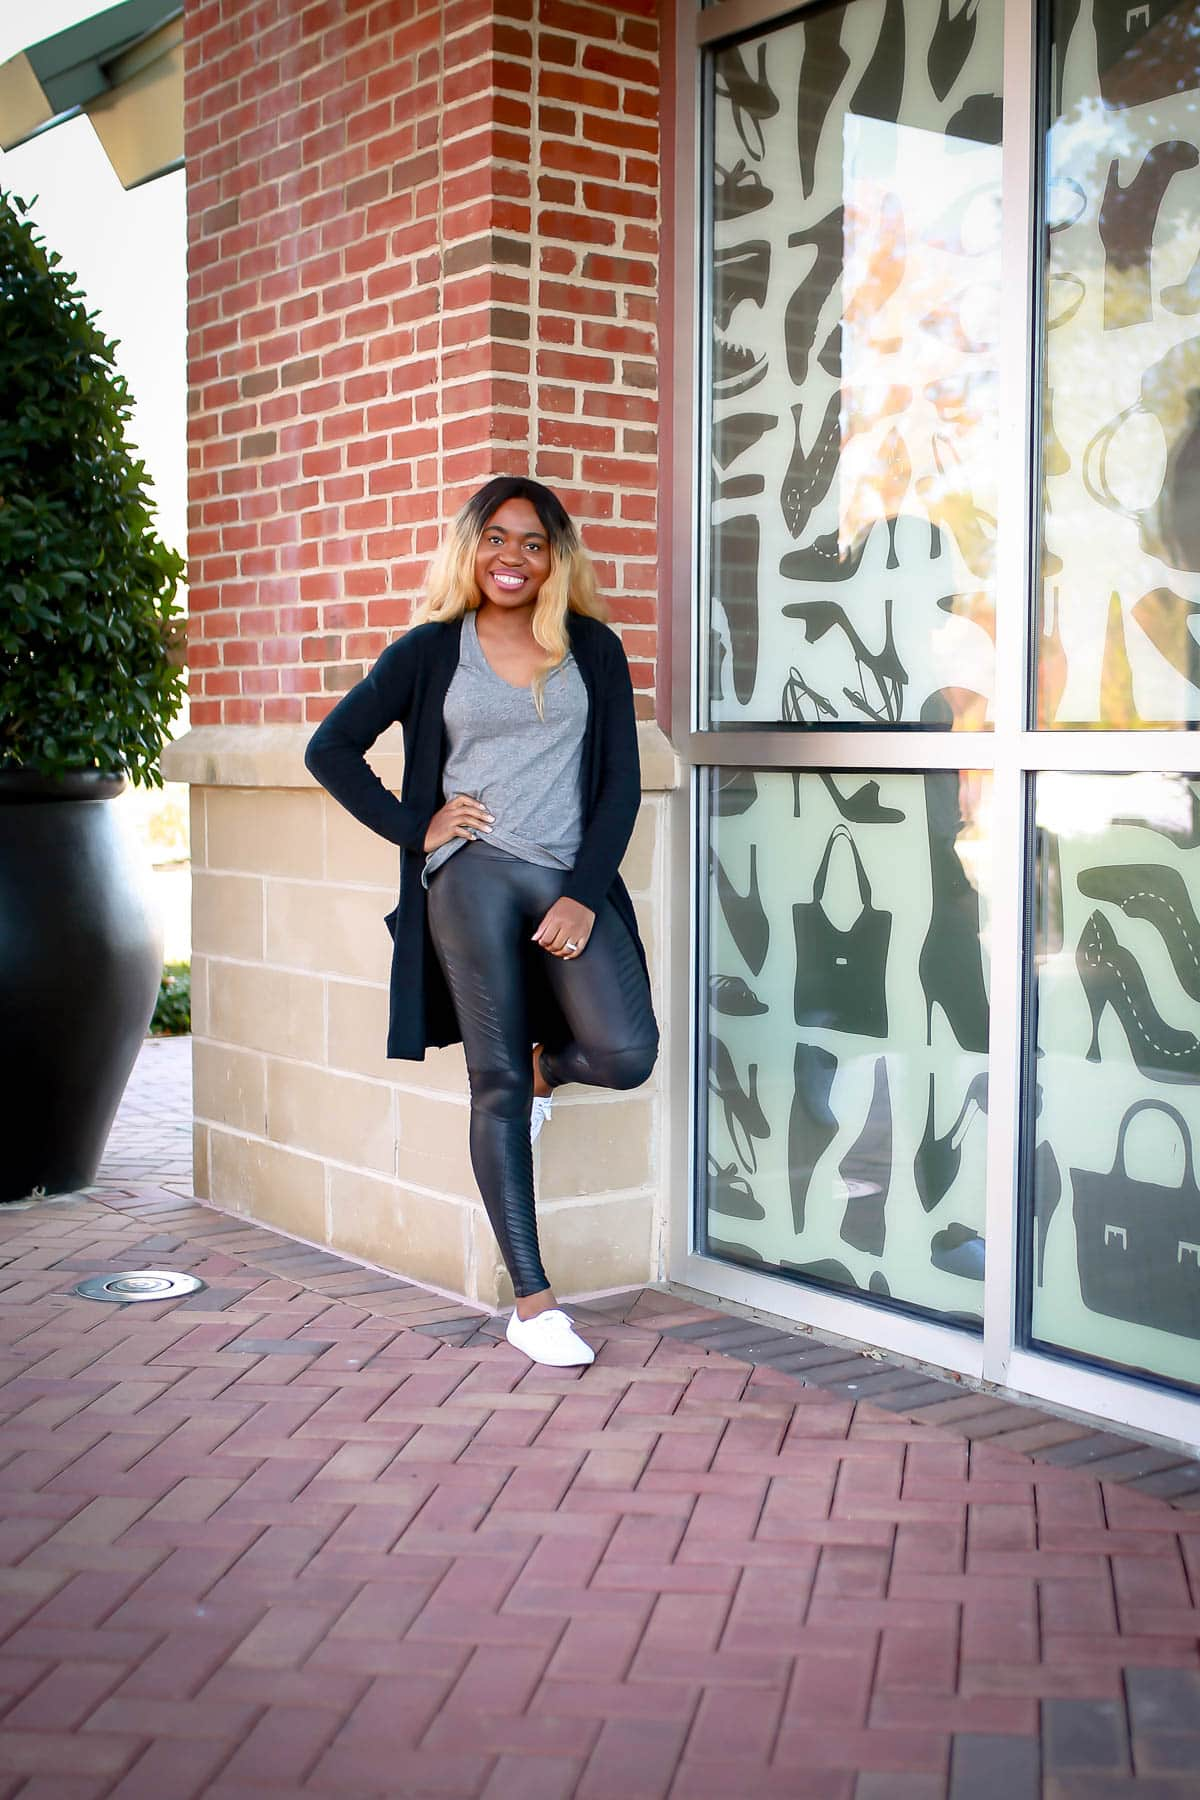 How to wear spanx faux leather leggings | Spanx Faux Leather Leggings are hyped as being a staple in any wardrobe. Even for winter? Sharing my thoughts and experience wearing this Spanx leggings on whether it is truly versatile and worth the hype. Or if it's a piece of overpriced leggings.